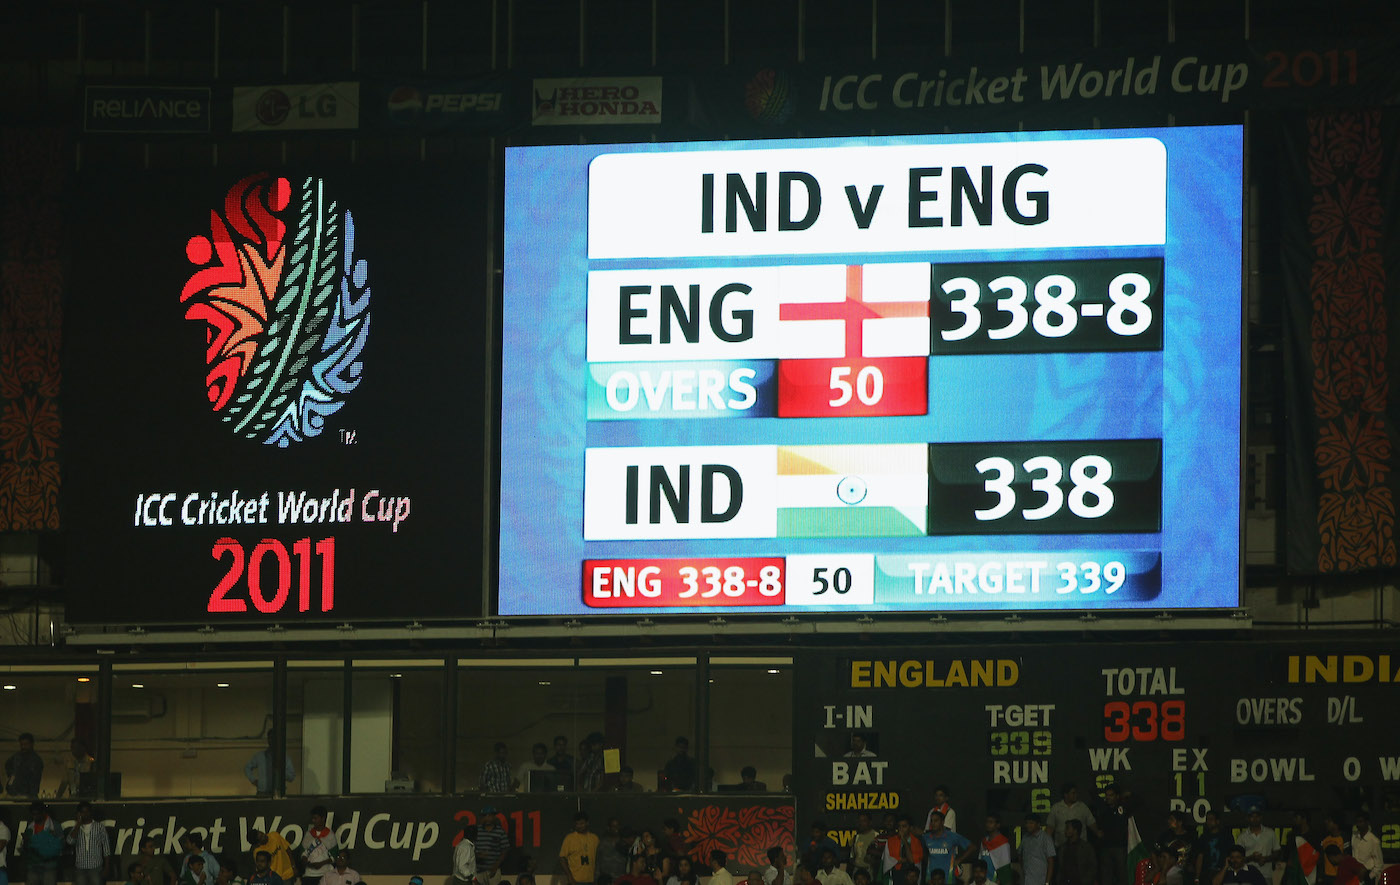 Andrew Strauss' highest ever ODI score almost took England all the way in their tied game against India